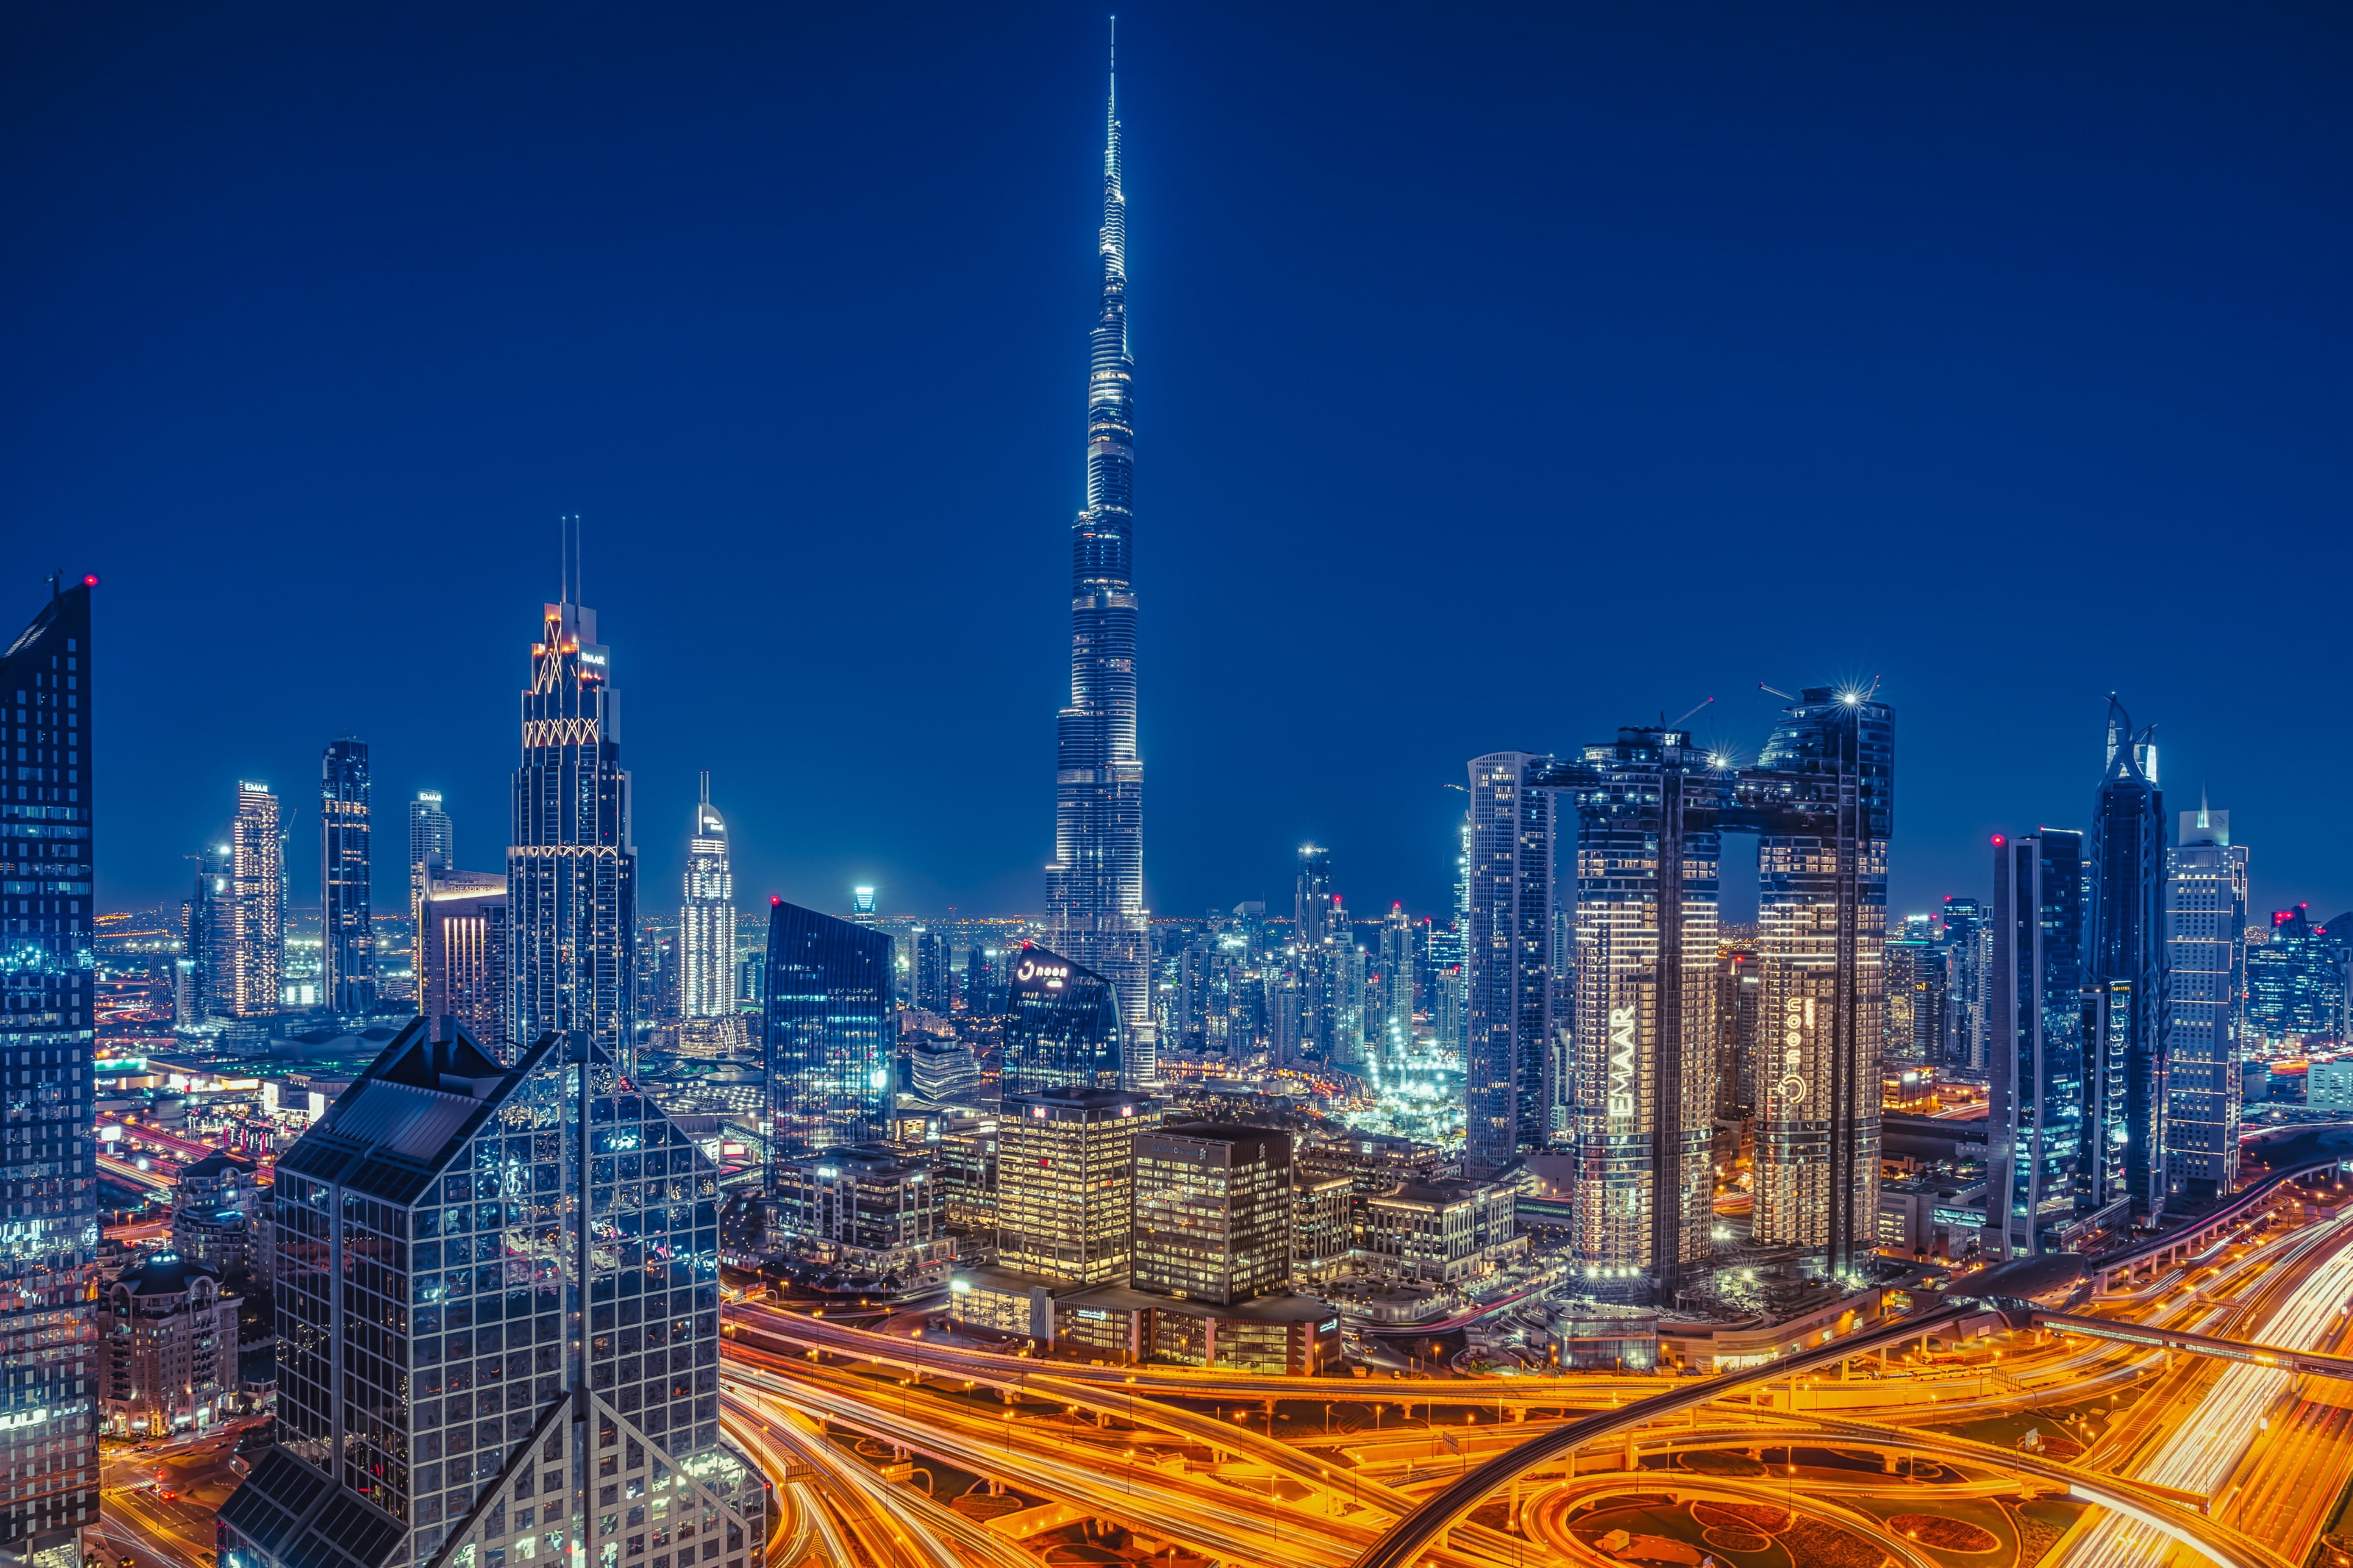 A picture of the Dubai skyline at night. Downtown Dubai and the Burj Khalifa are visible.